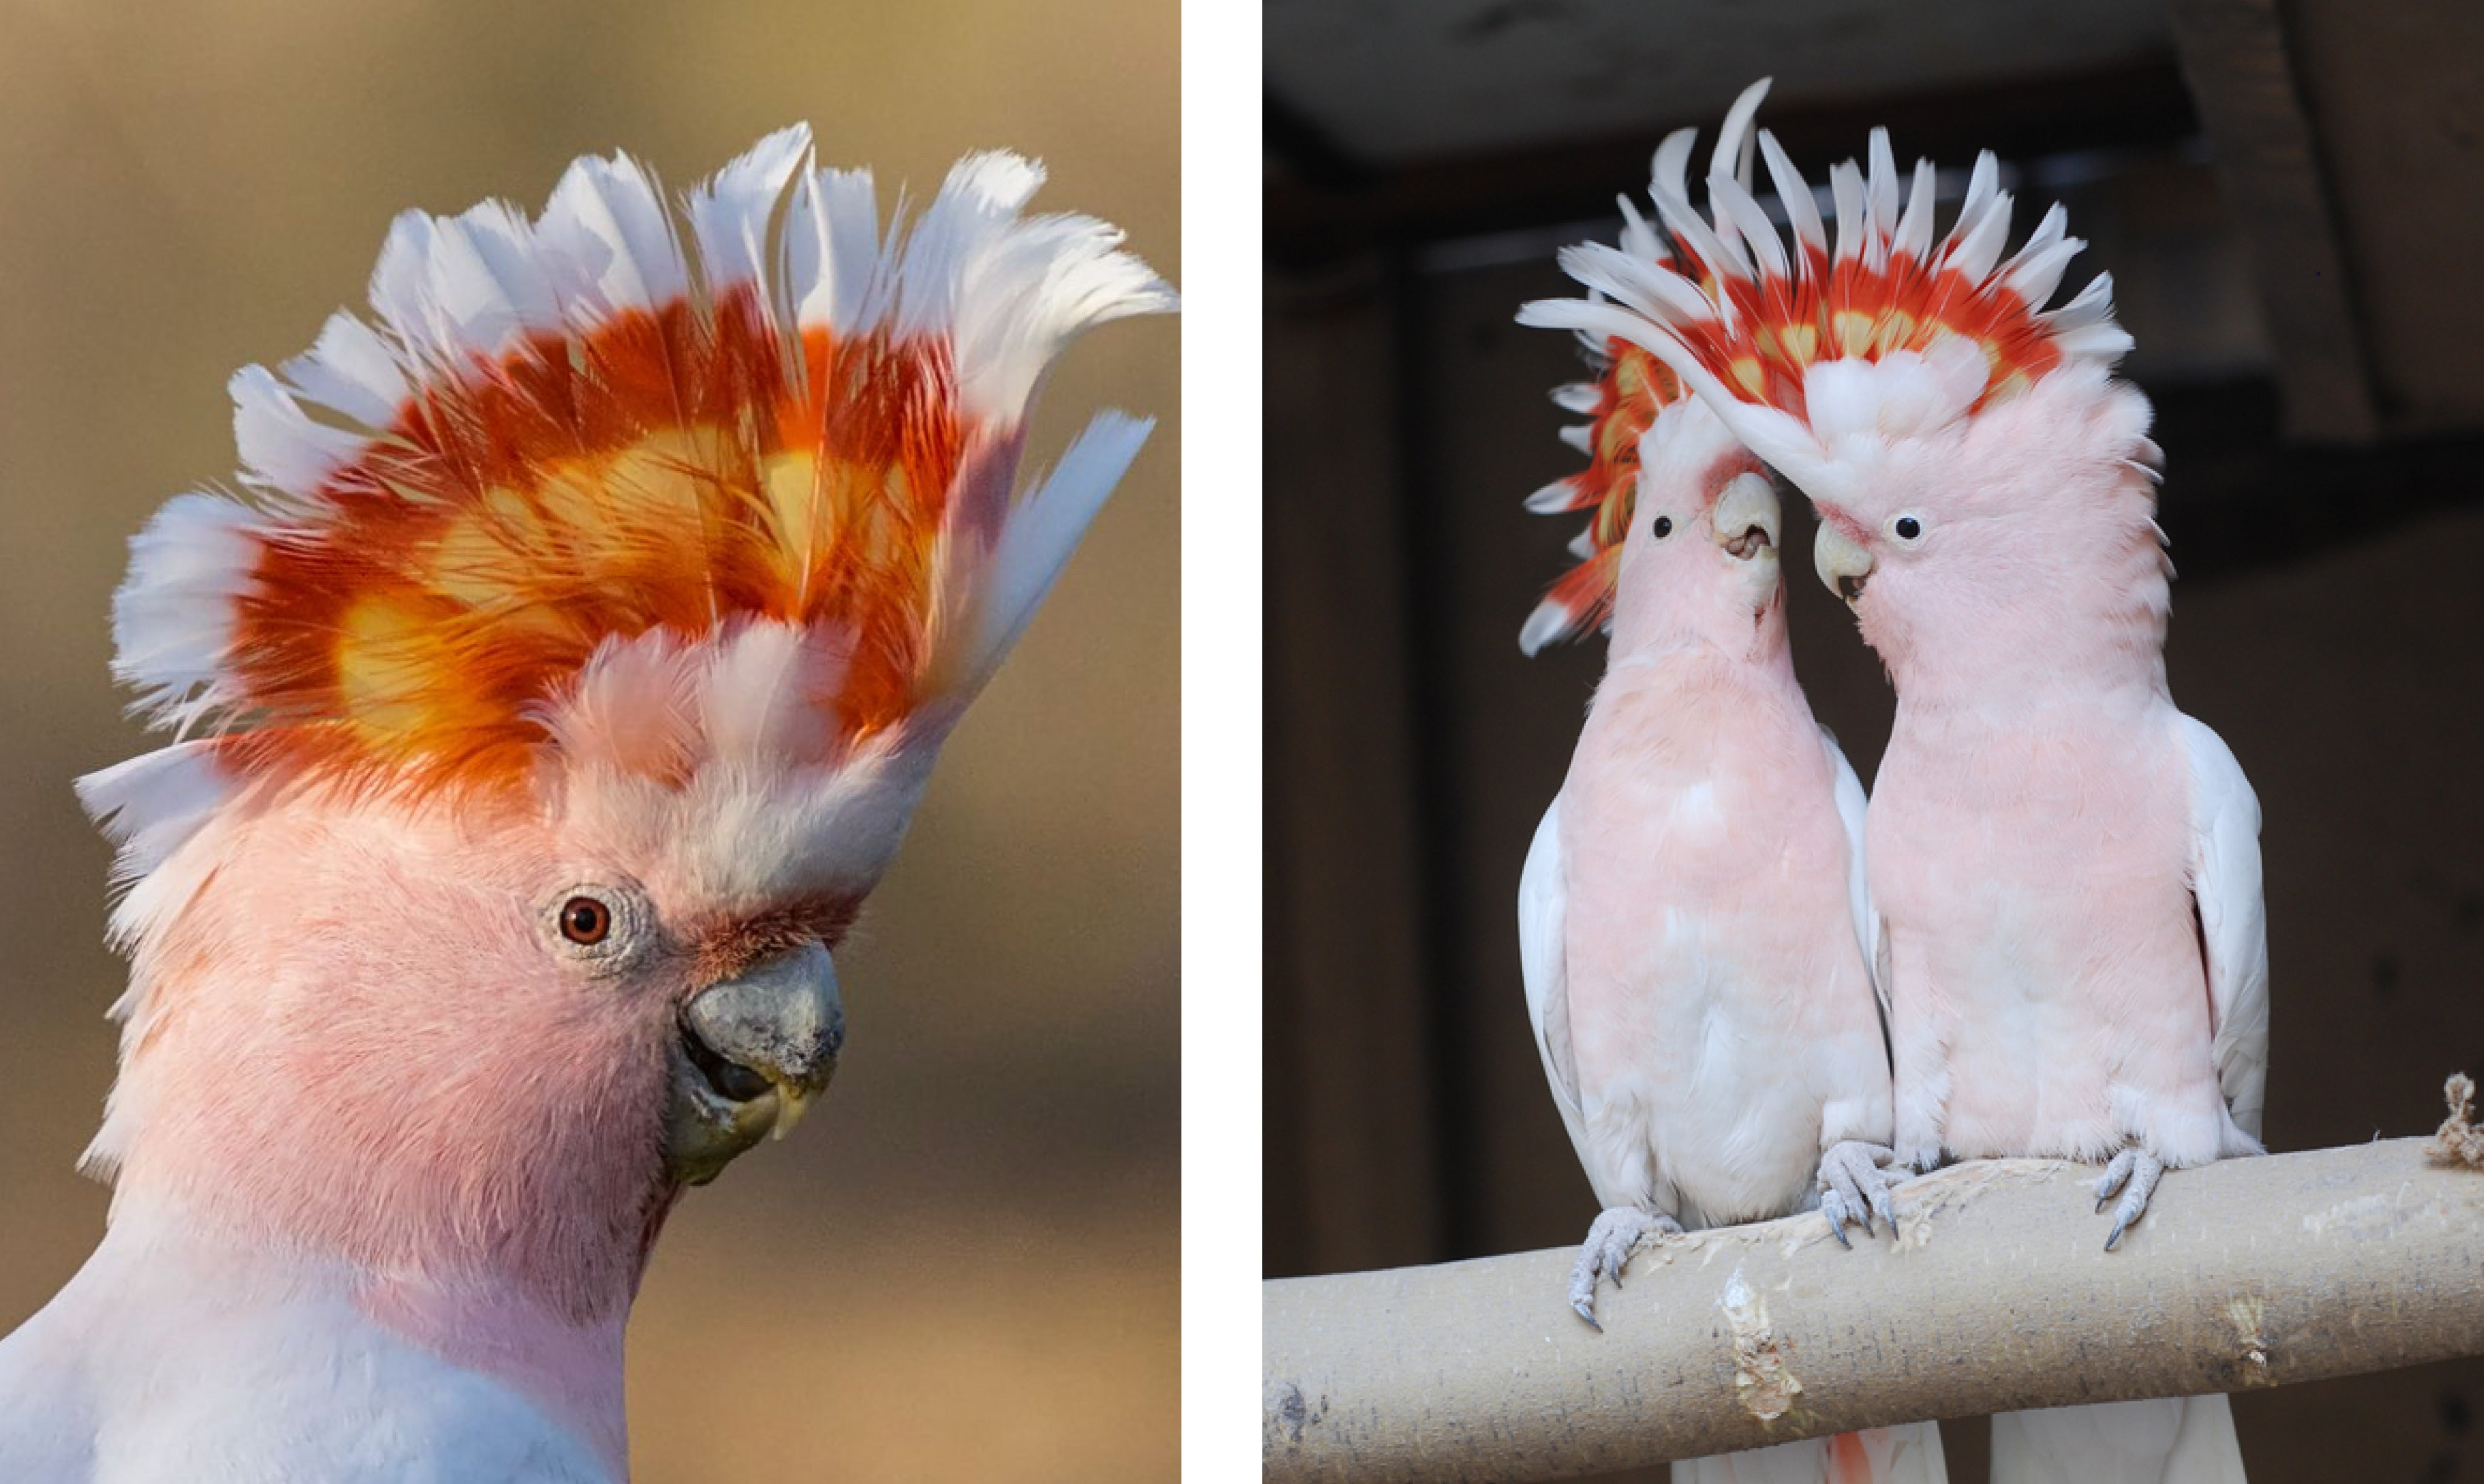 Pretty in pink - the Major Mitchell's cockatoo